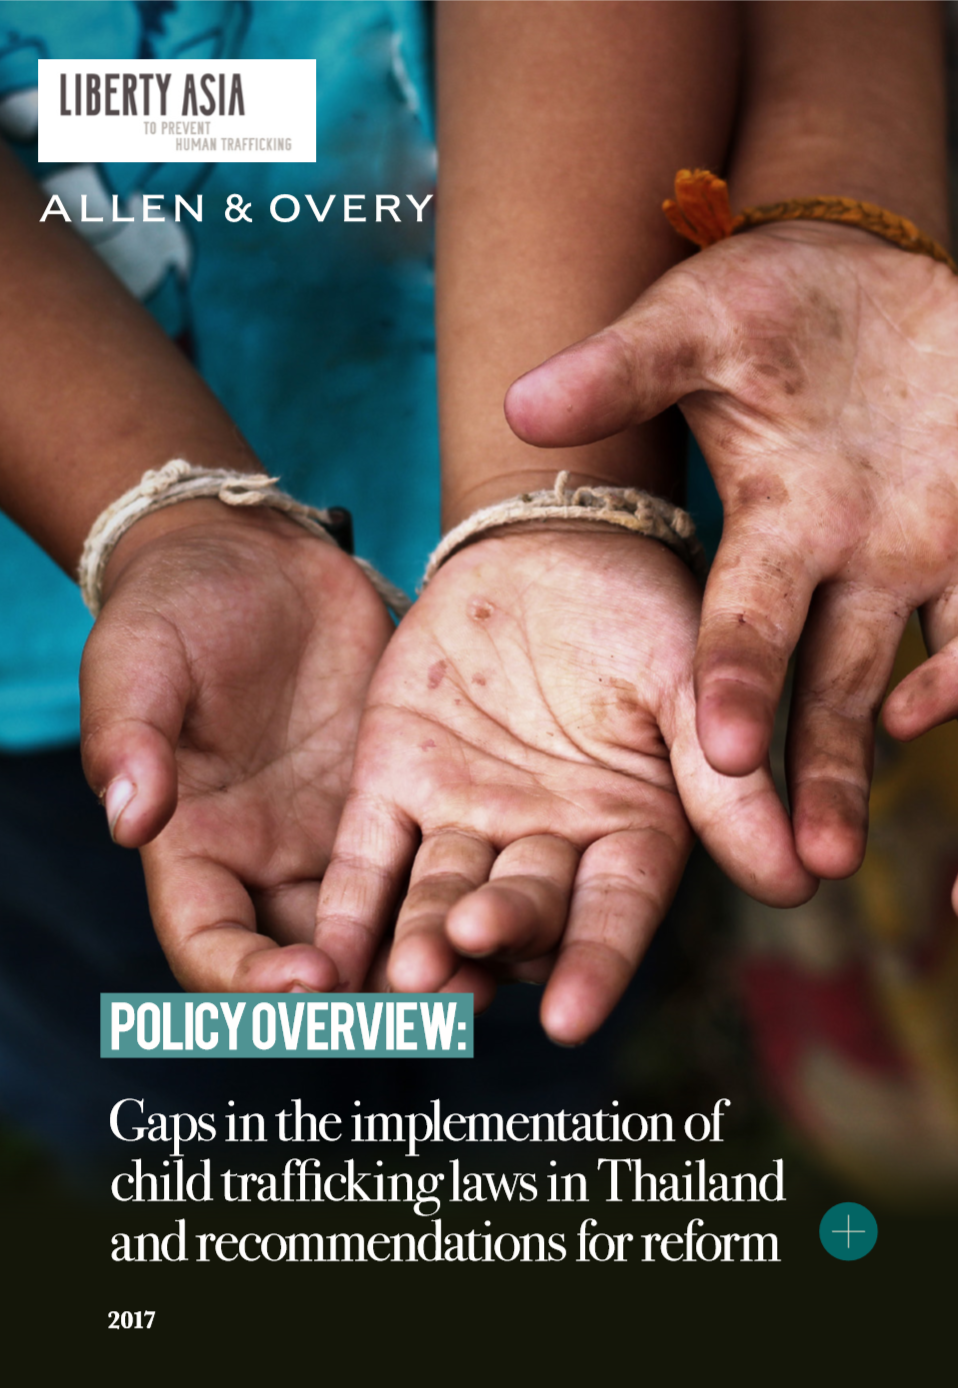 This Policy Overview is a high-level summary of the Policy Report on Thailand's Child Trafficking Legislation and Implementation. - By: Liberty Asia and Allen & Overy